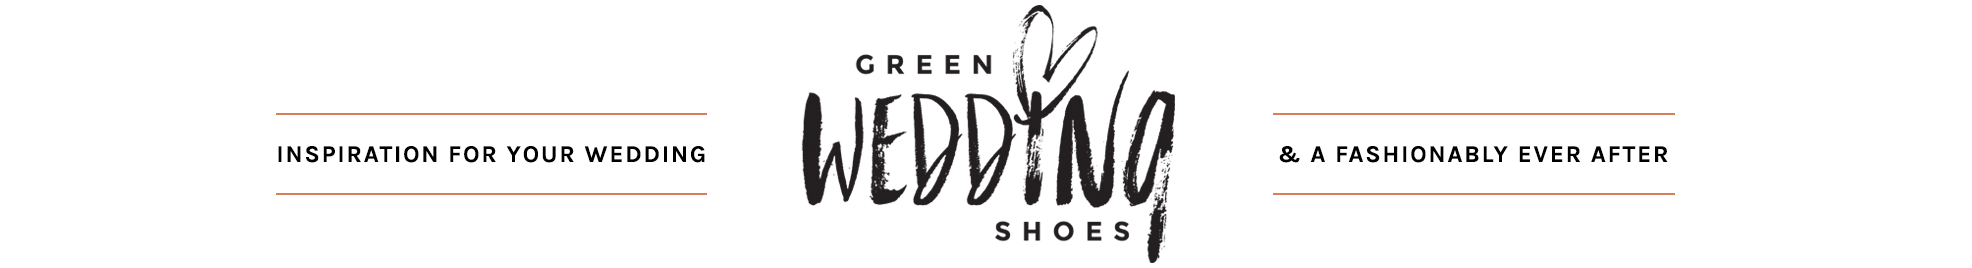 Home - Green Wedding Shoes